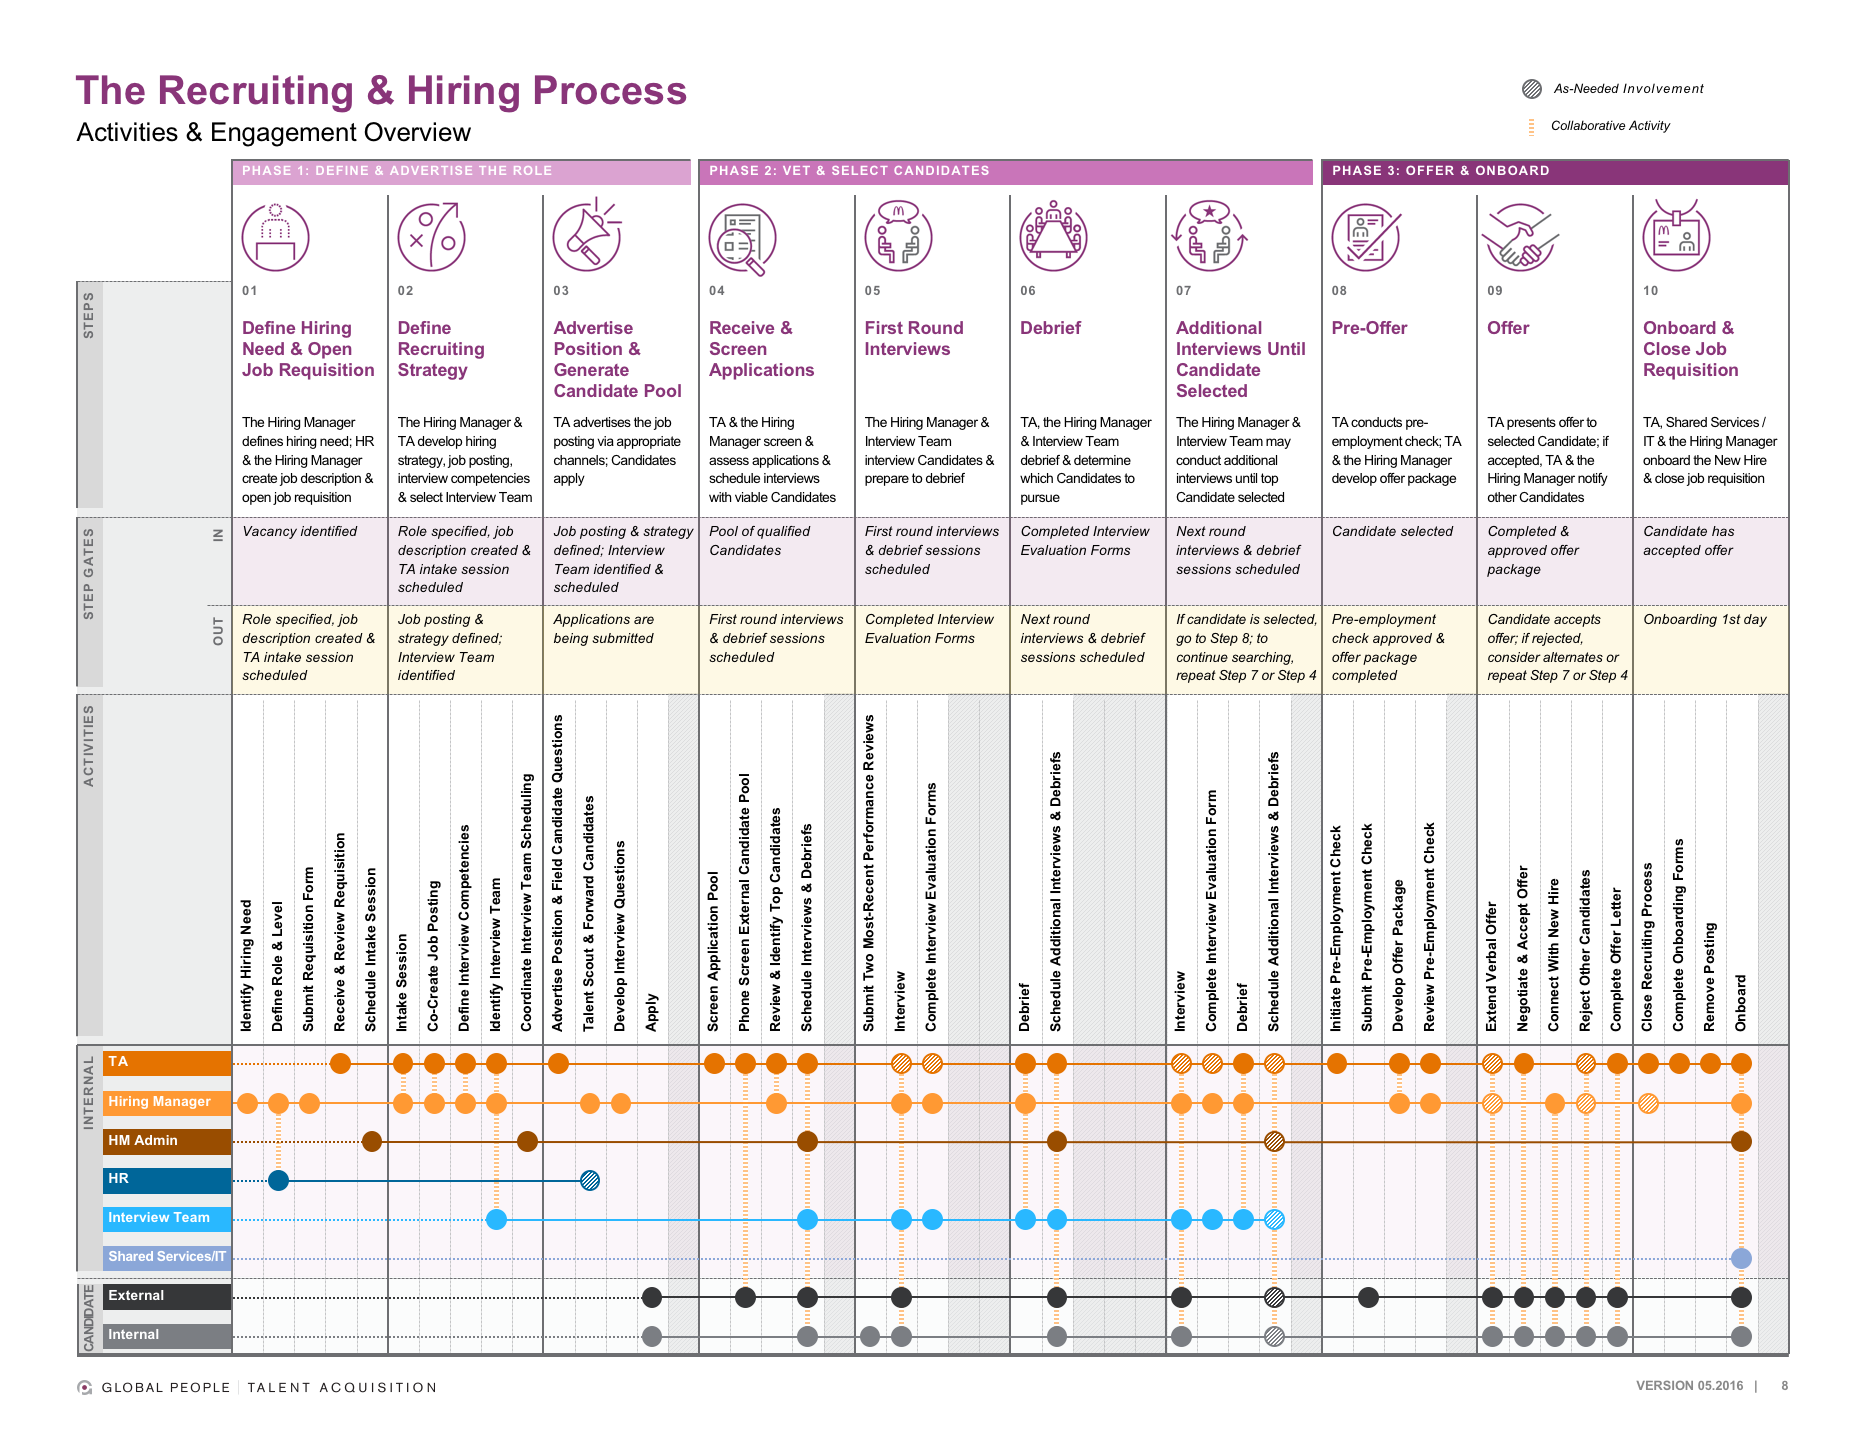 We developed an easy-to-follow grid highlighting all the phases, steps, activities and people involved in the hiring process for a global corporation.  Learn more  >